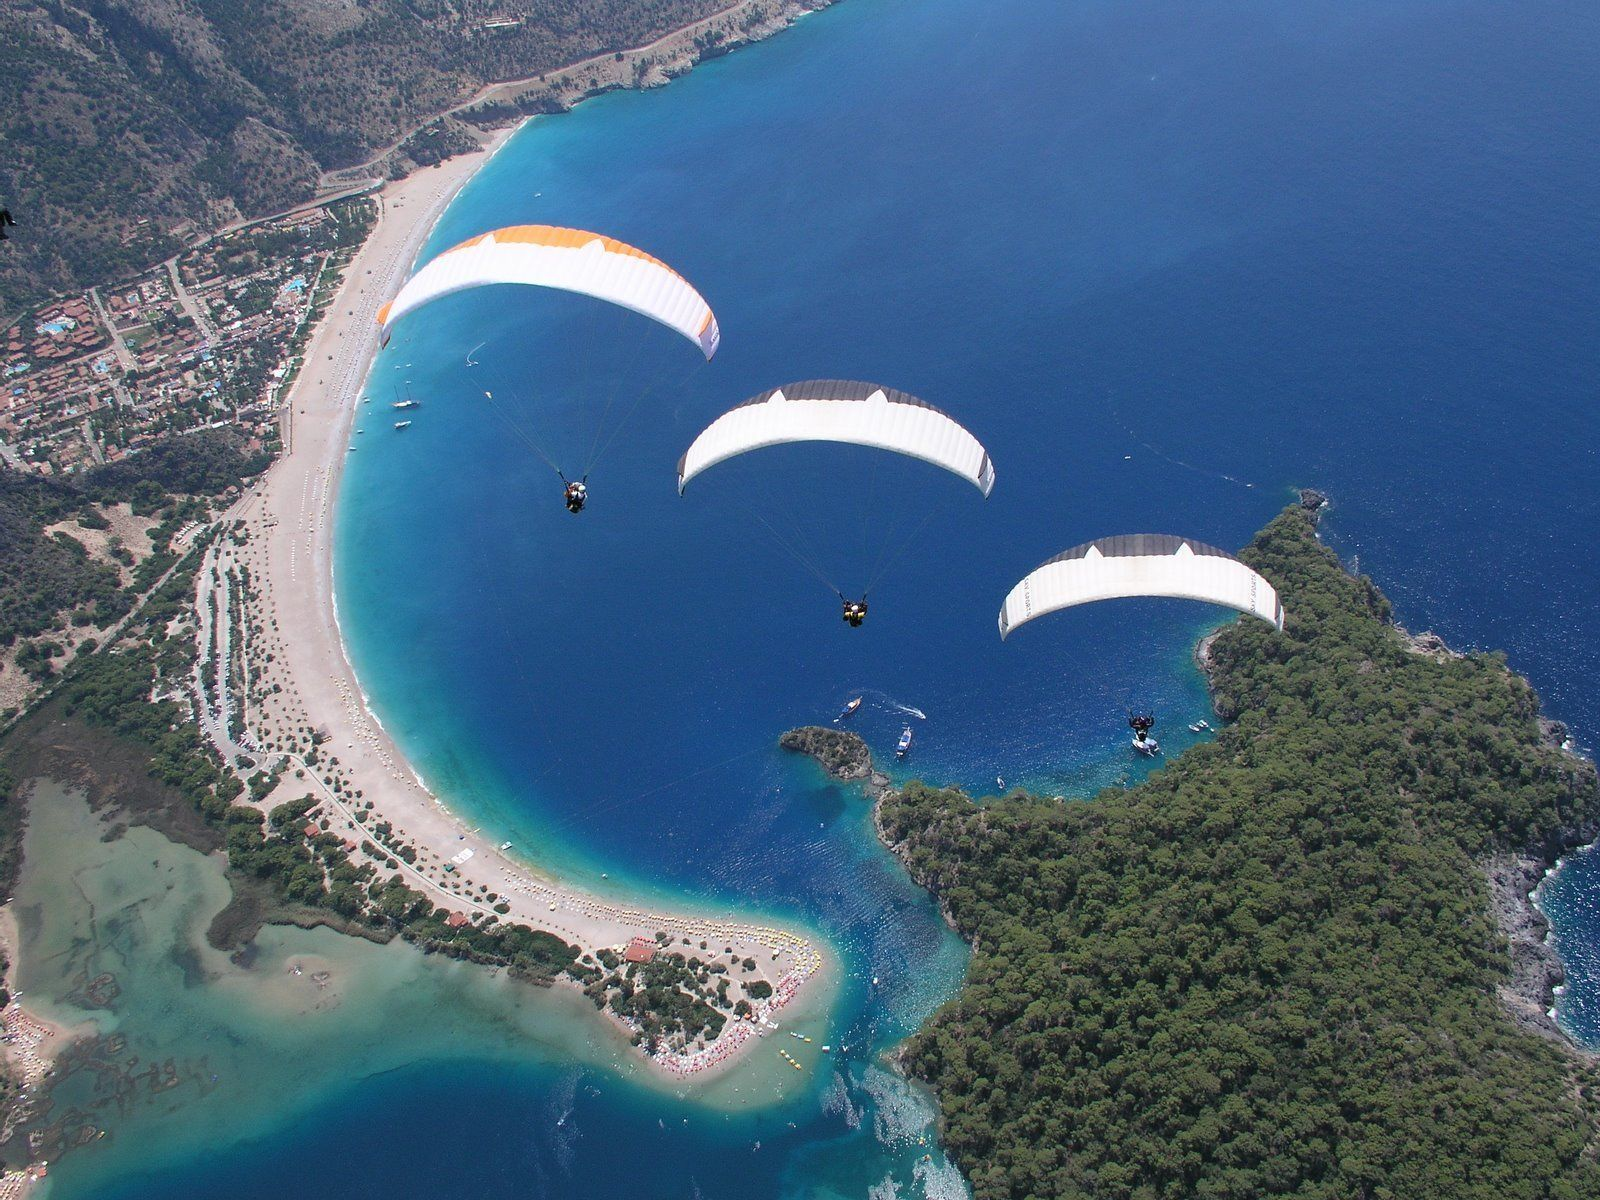 Paragliding over the Blue Lagoon